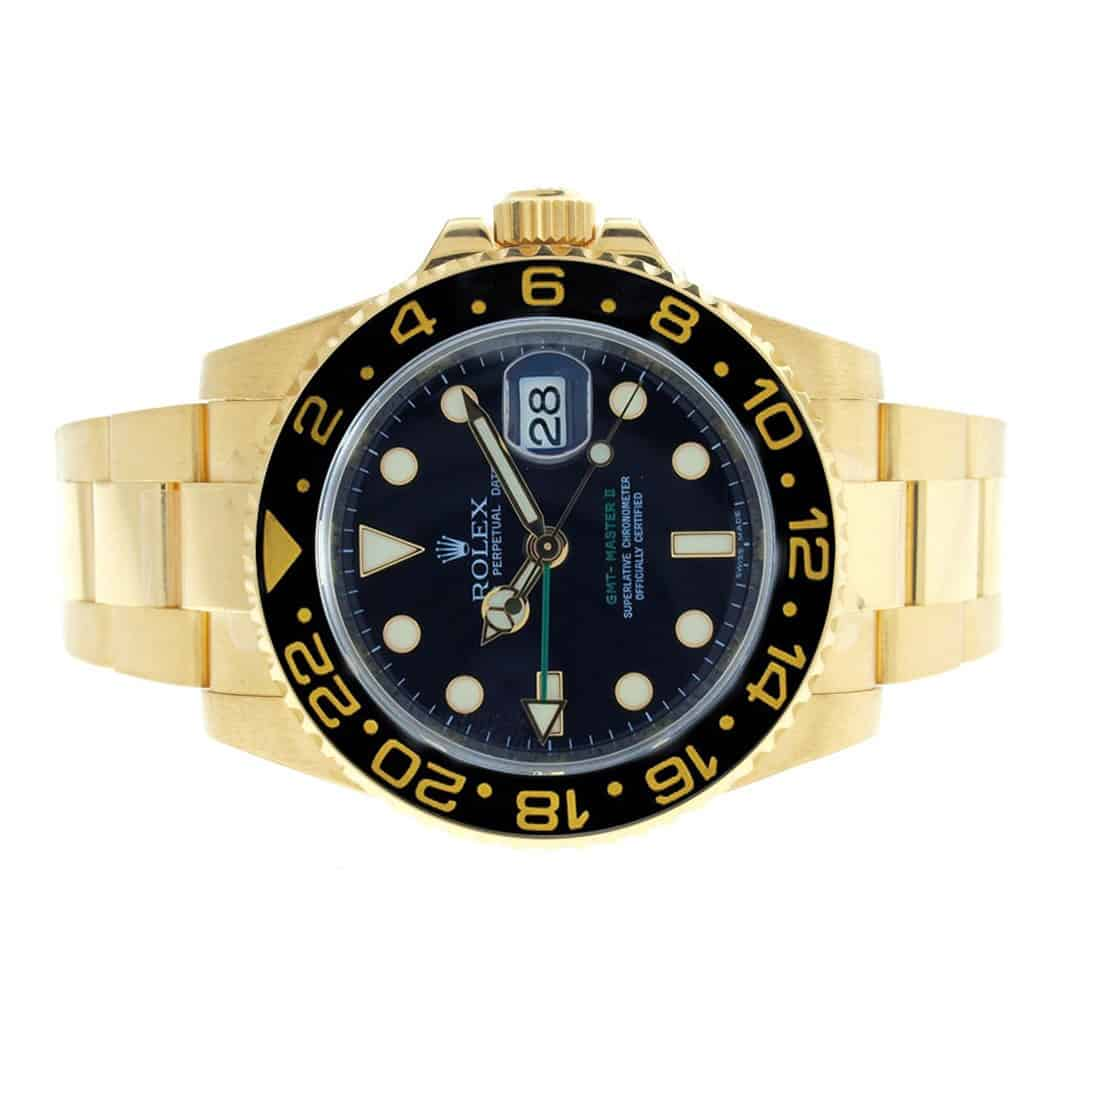 GMT Master II 02 side